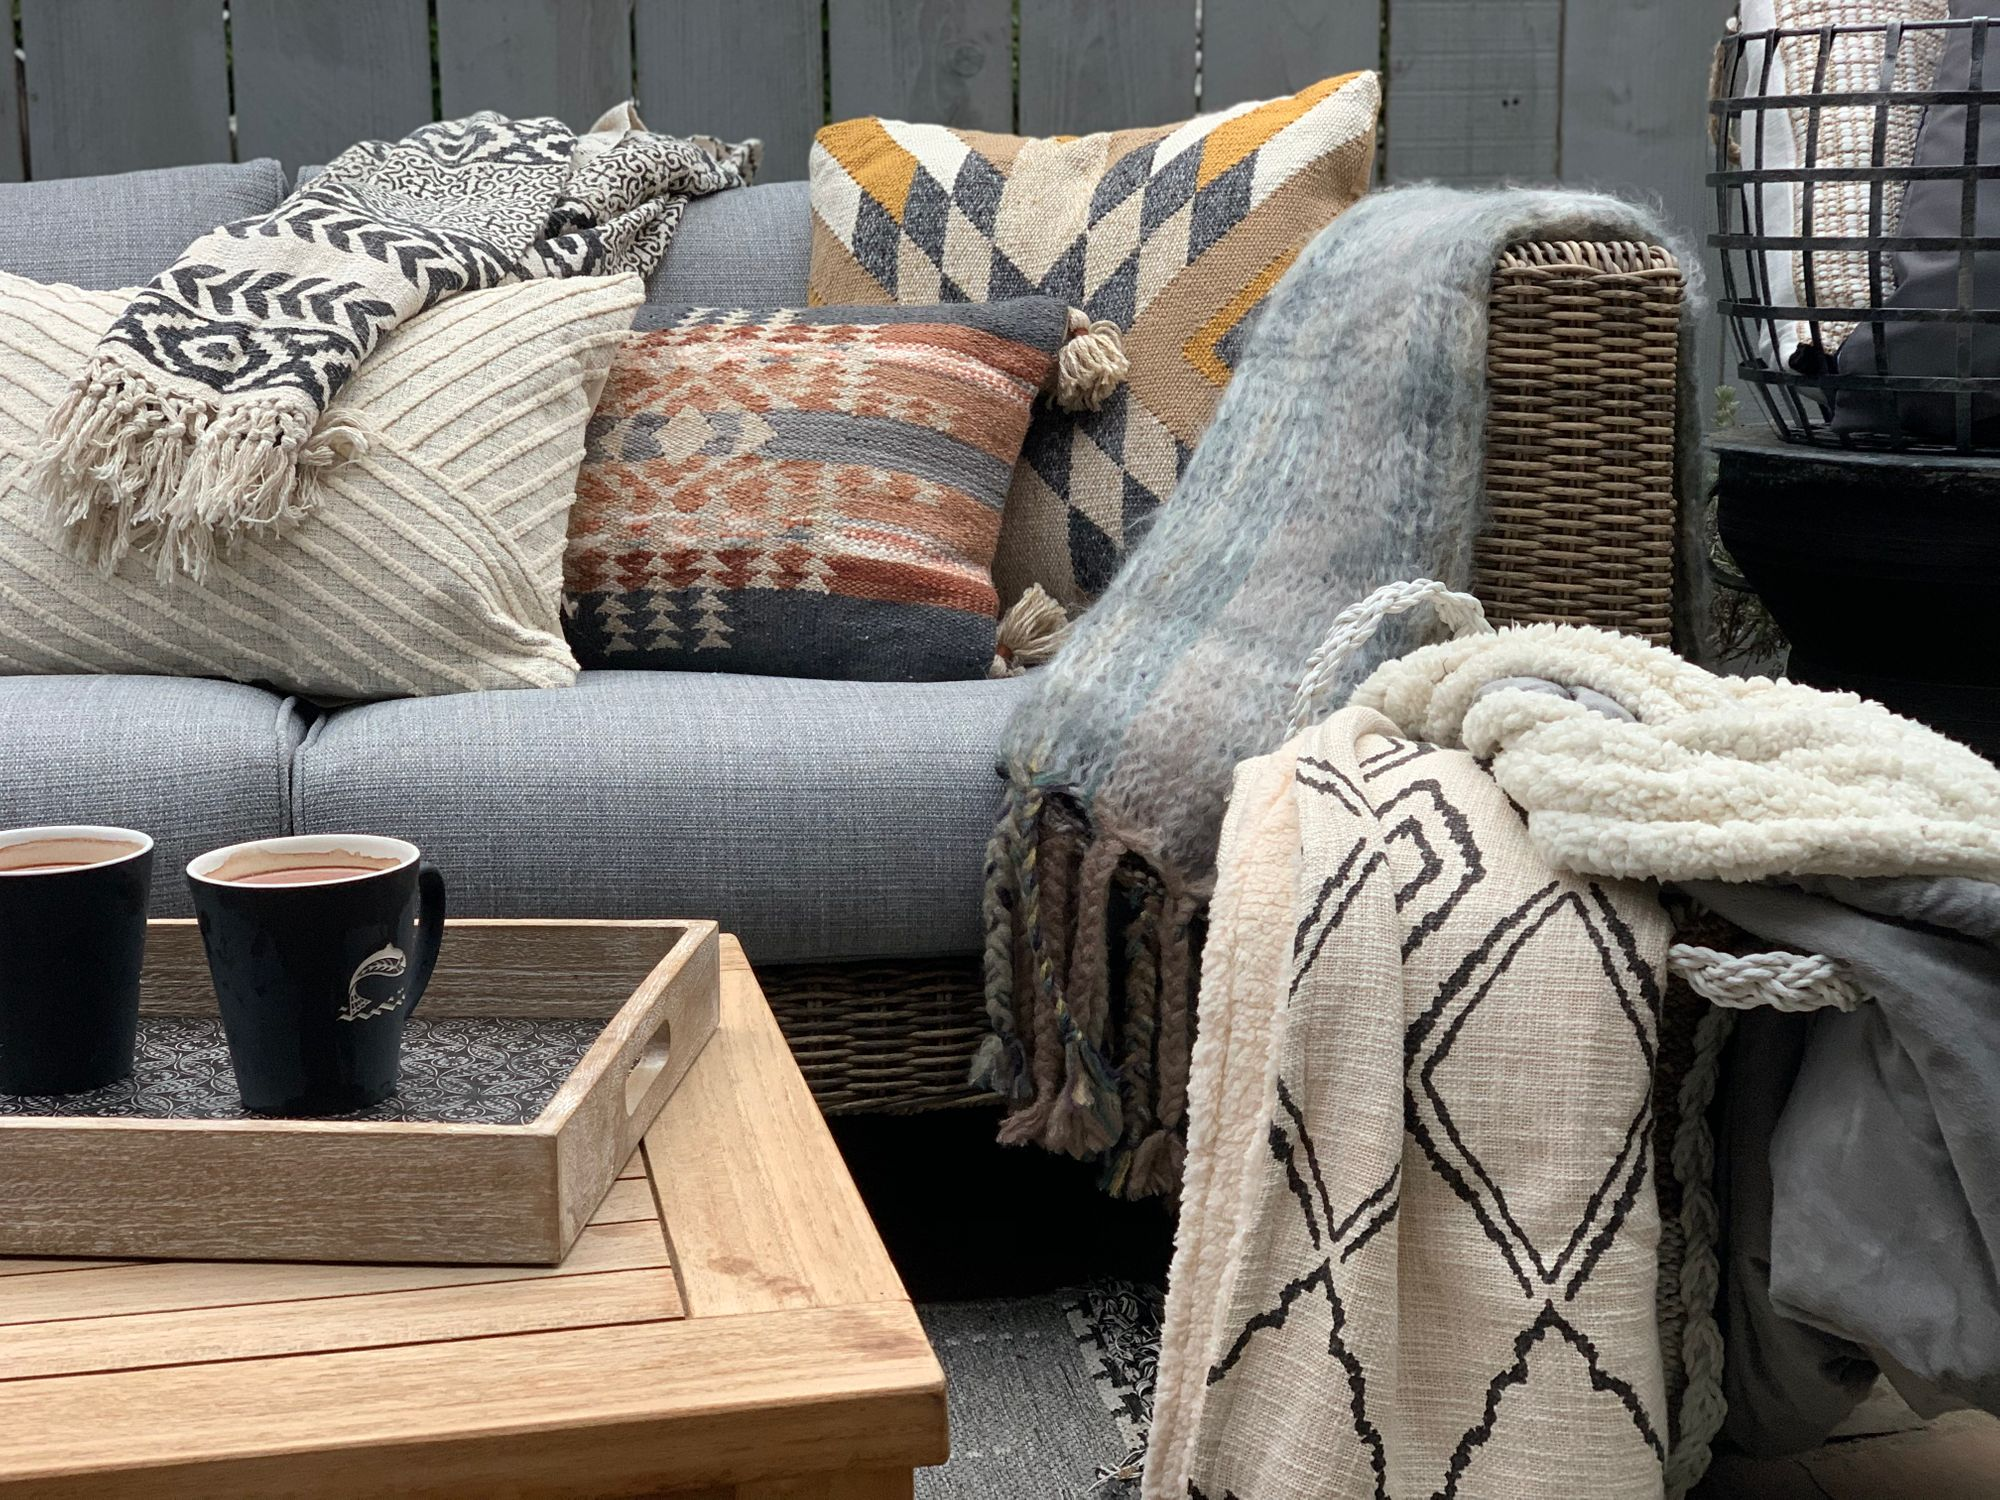 How to Cozy Up an Outdoor Space